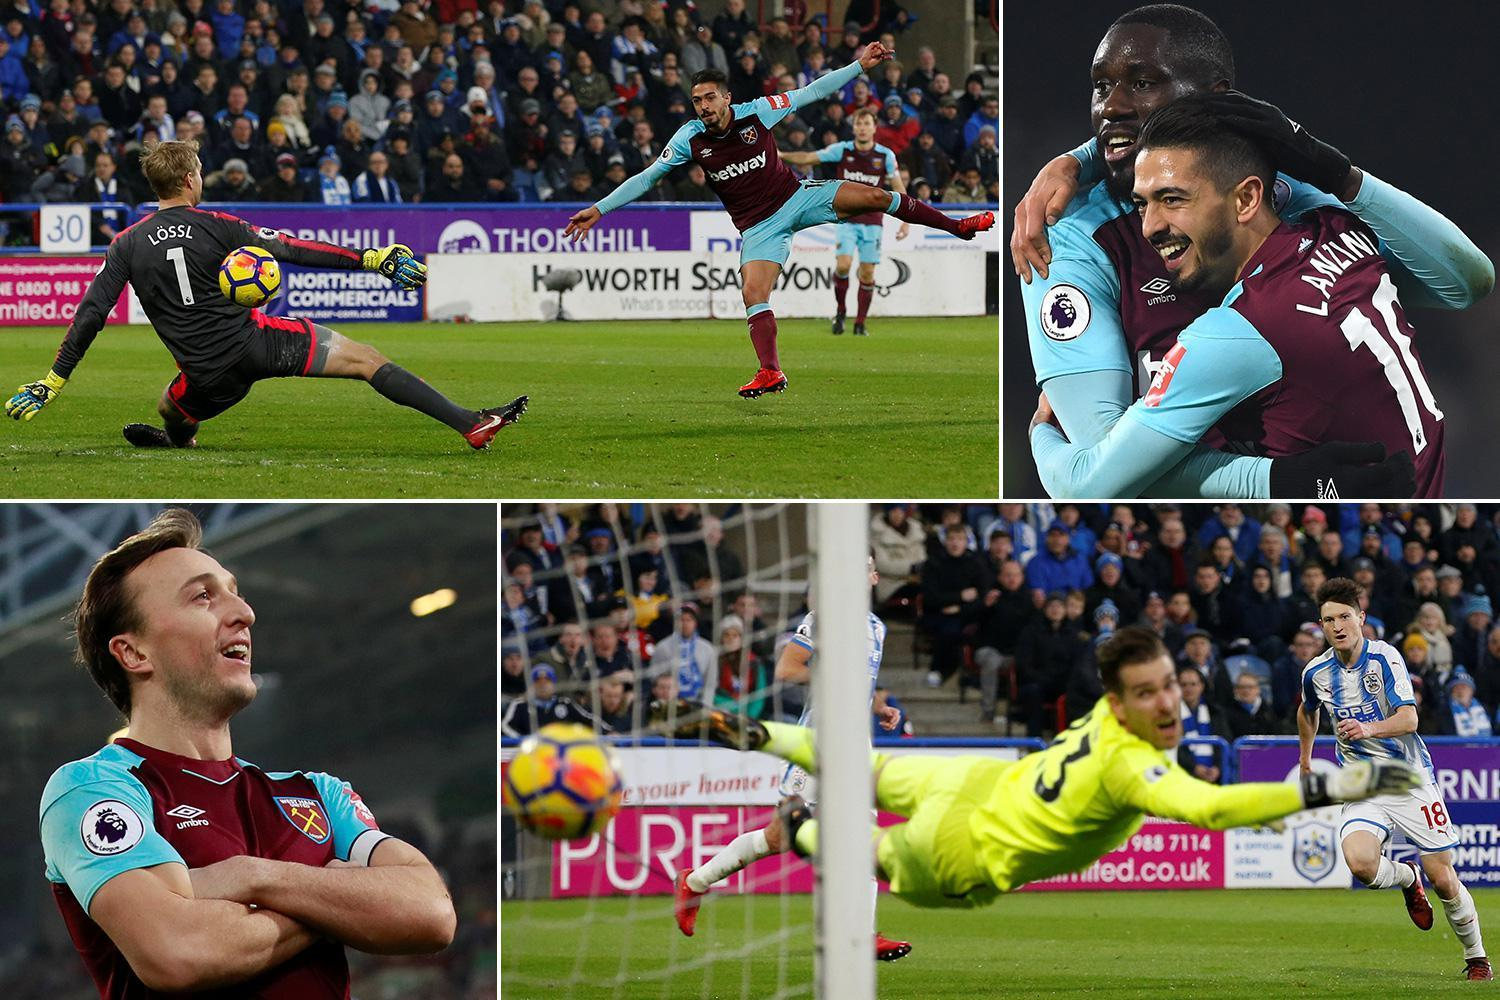 Huddersfield 1 West Ham 4: Terriers hammered as Marko Arnautovic and Manuel Lanzini star to lift visitors five points clear of drop